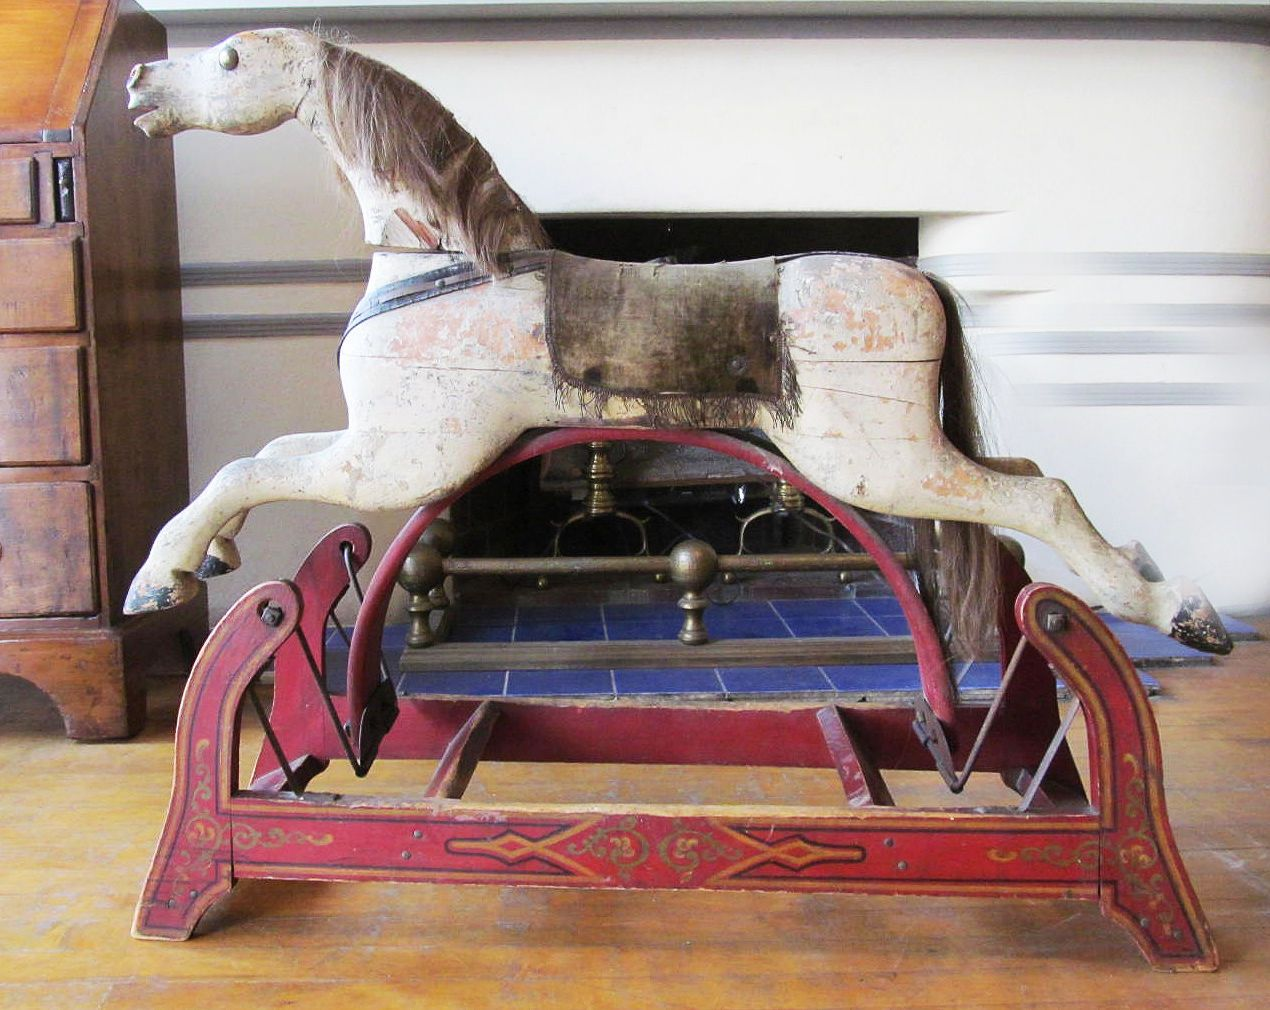 Late 1800s Antique Vintage Glider Wood Hobby Horse By Whitney Reed From Research It Appears That The Whitne Antique Rocking Horse Hobby Horse Rocking Horse